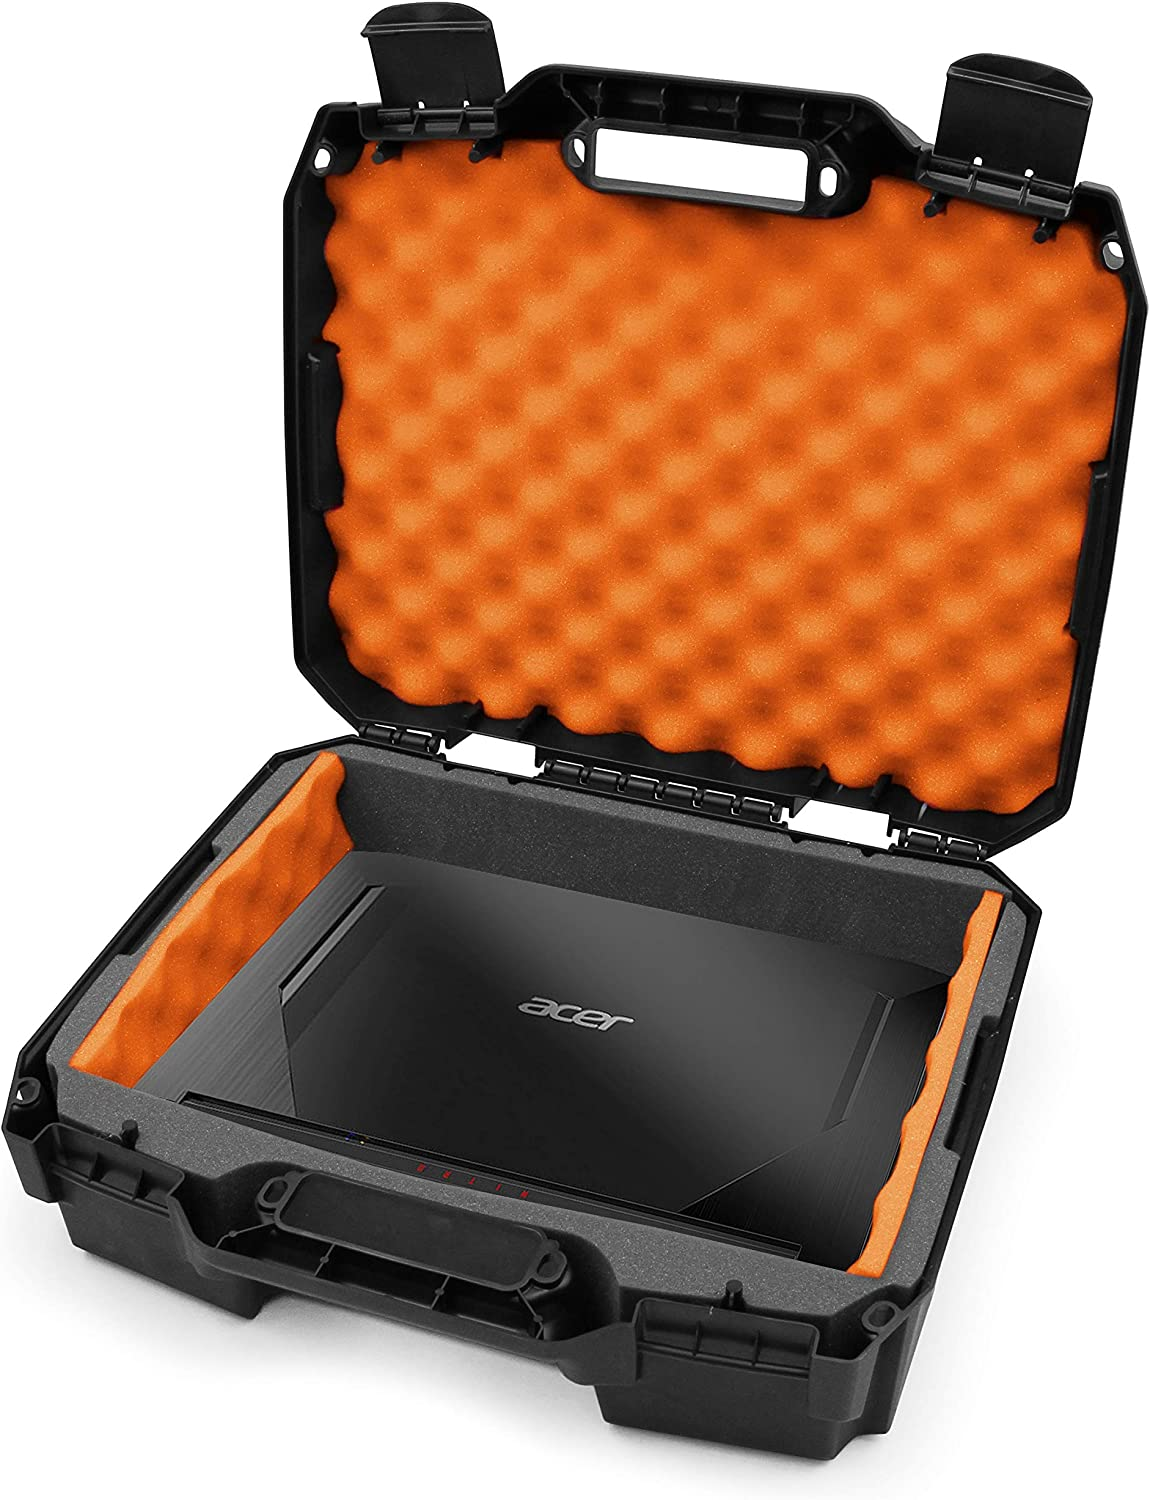 CASEMATIX 15.6 Hard Laptop Case Compatible with Acer Nitro 5 Gaming Laptop, Asus Zephyrus G14, MSI GS65 Stealth, Razer, Dell XPS 15, Gigabyte Aero 15 and 15 inch Gaming Laptop Accessories, Orange Foam